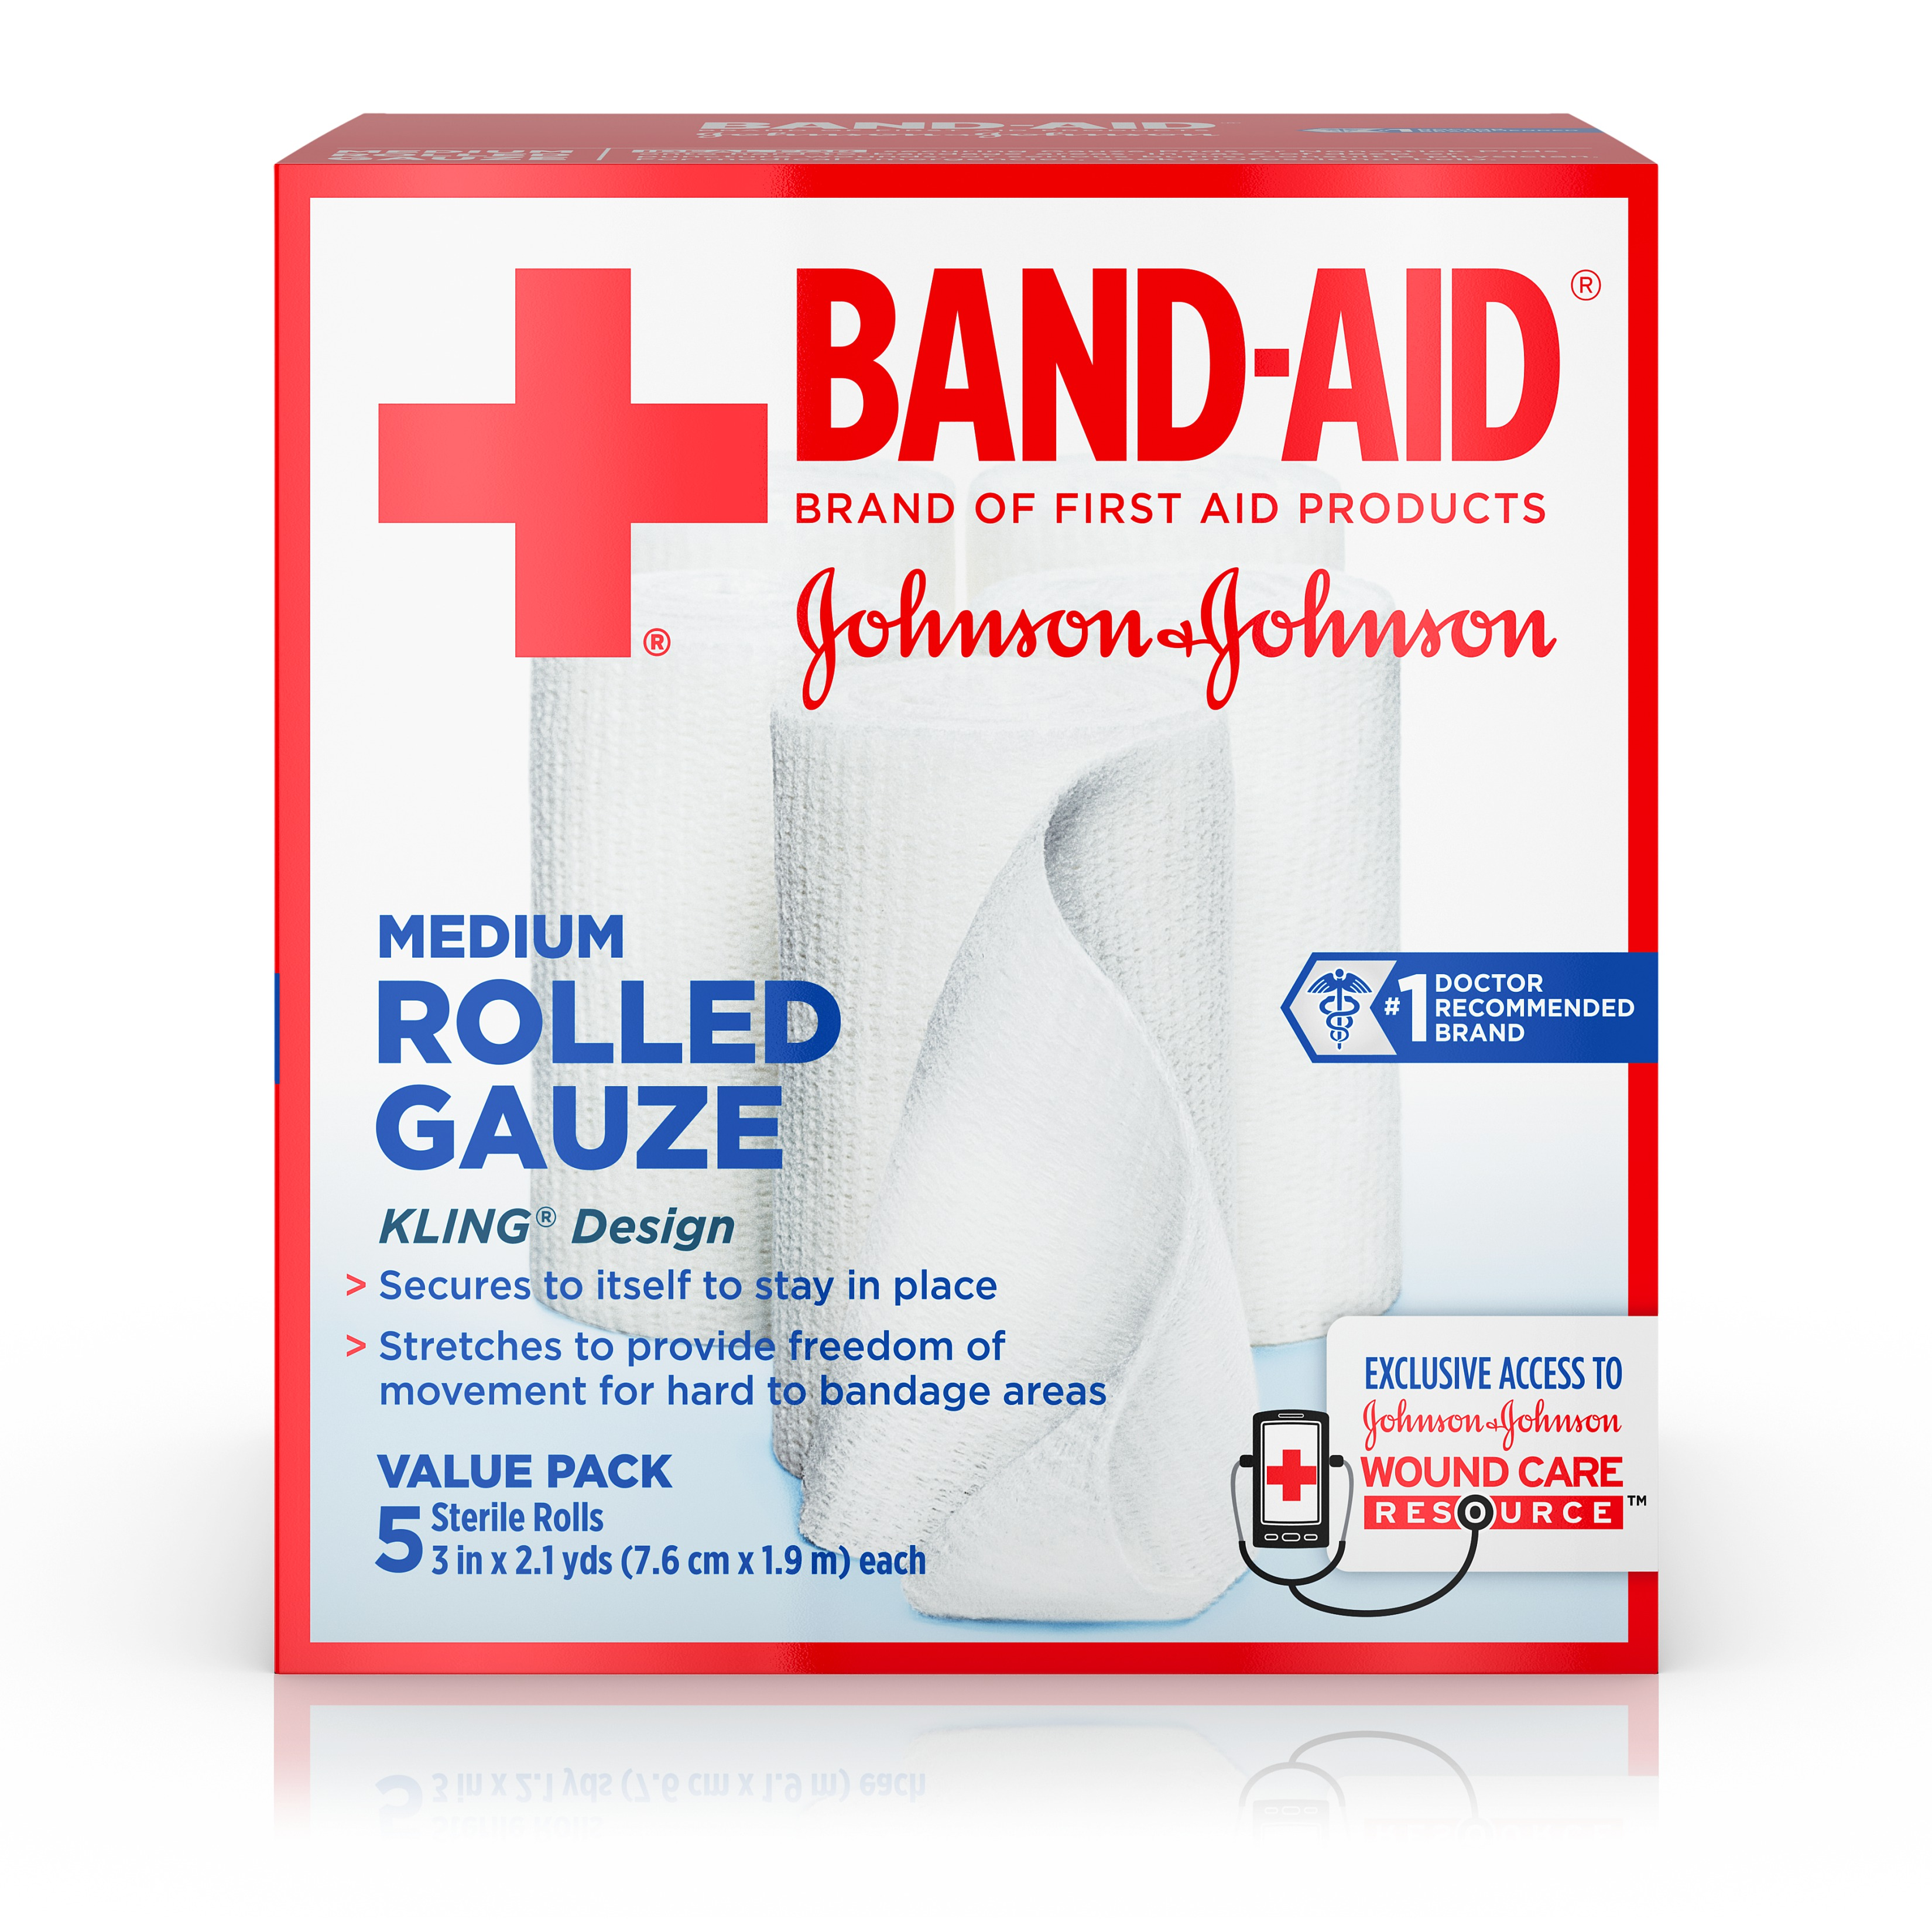 Band Aid 174 Brand Of First Aid Products Rolled Gauze Minor